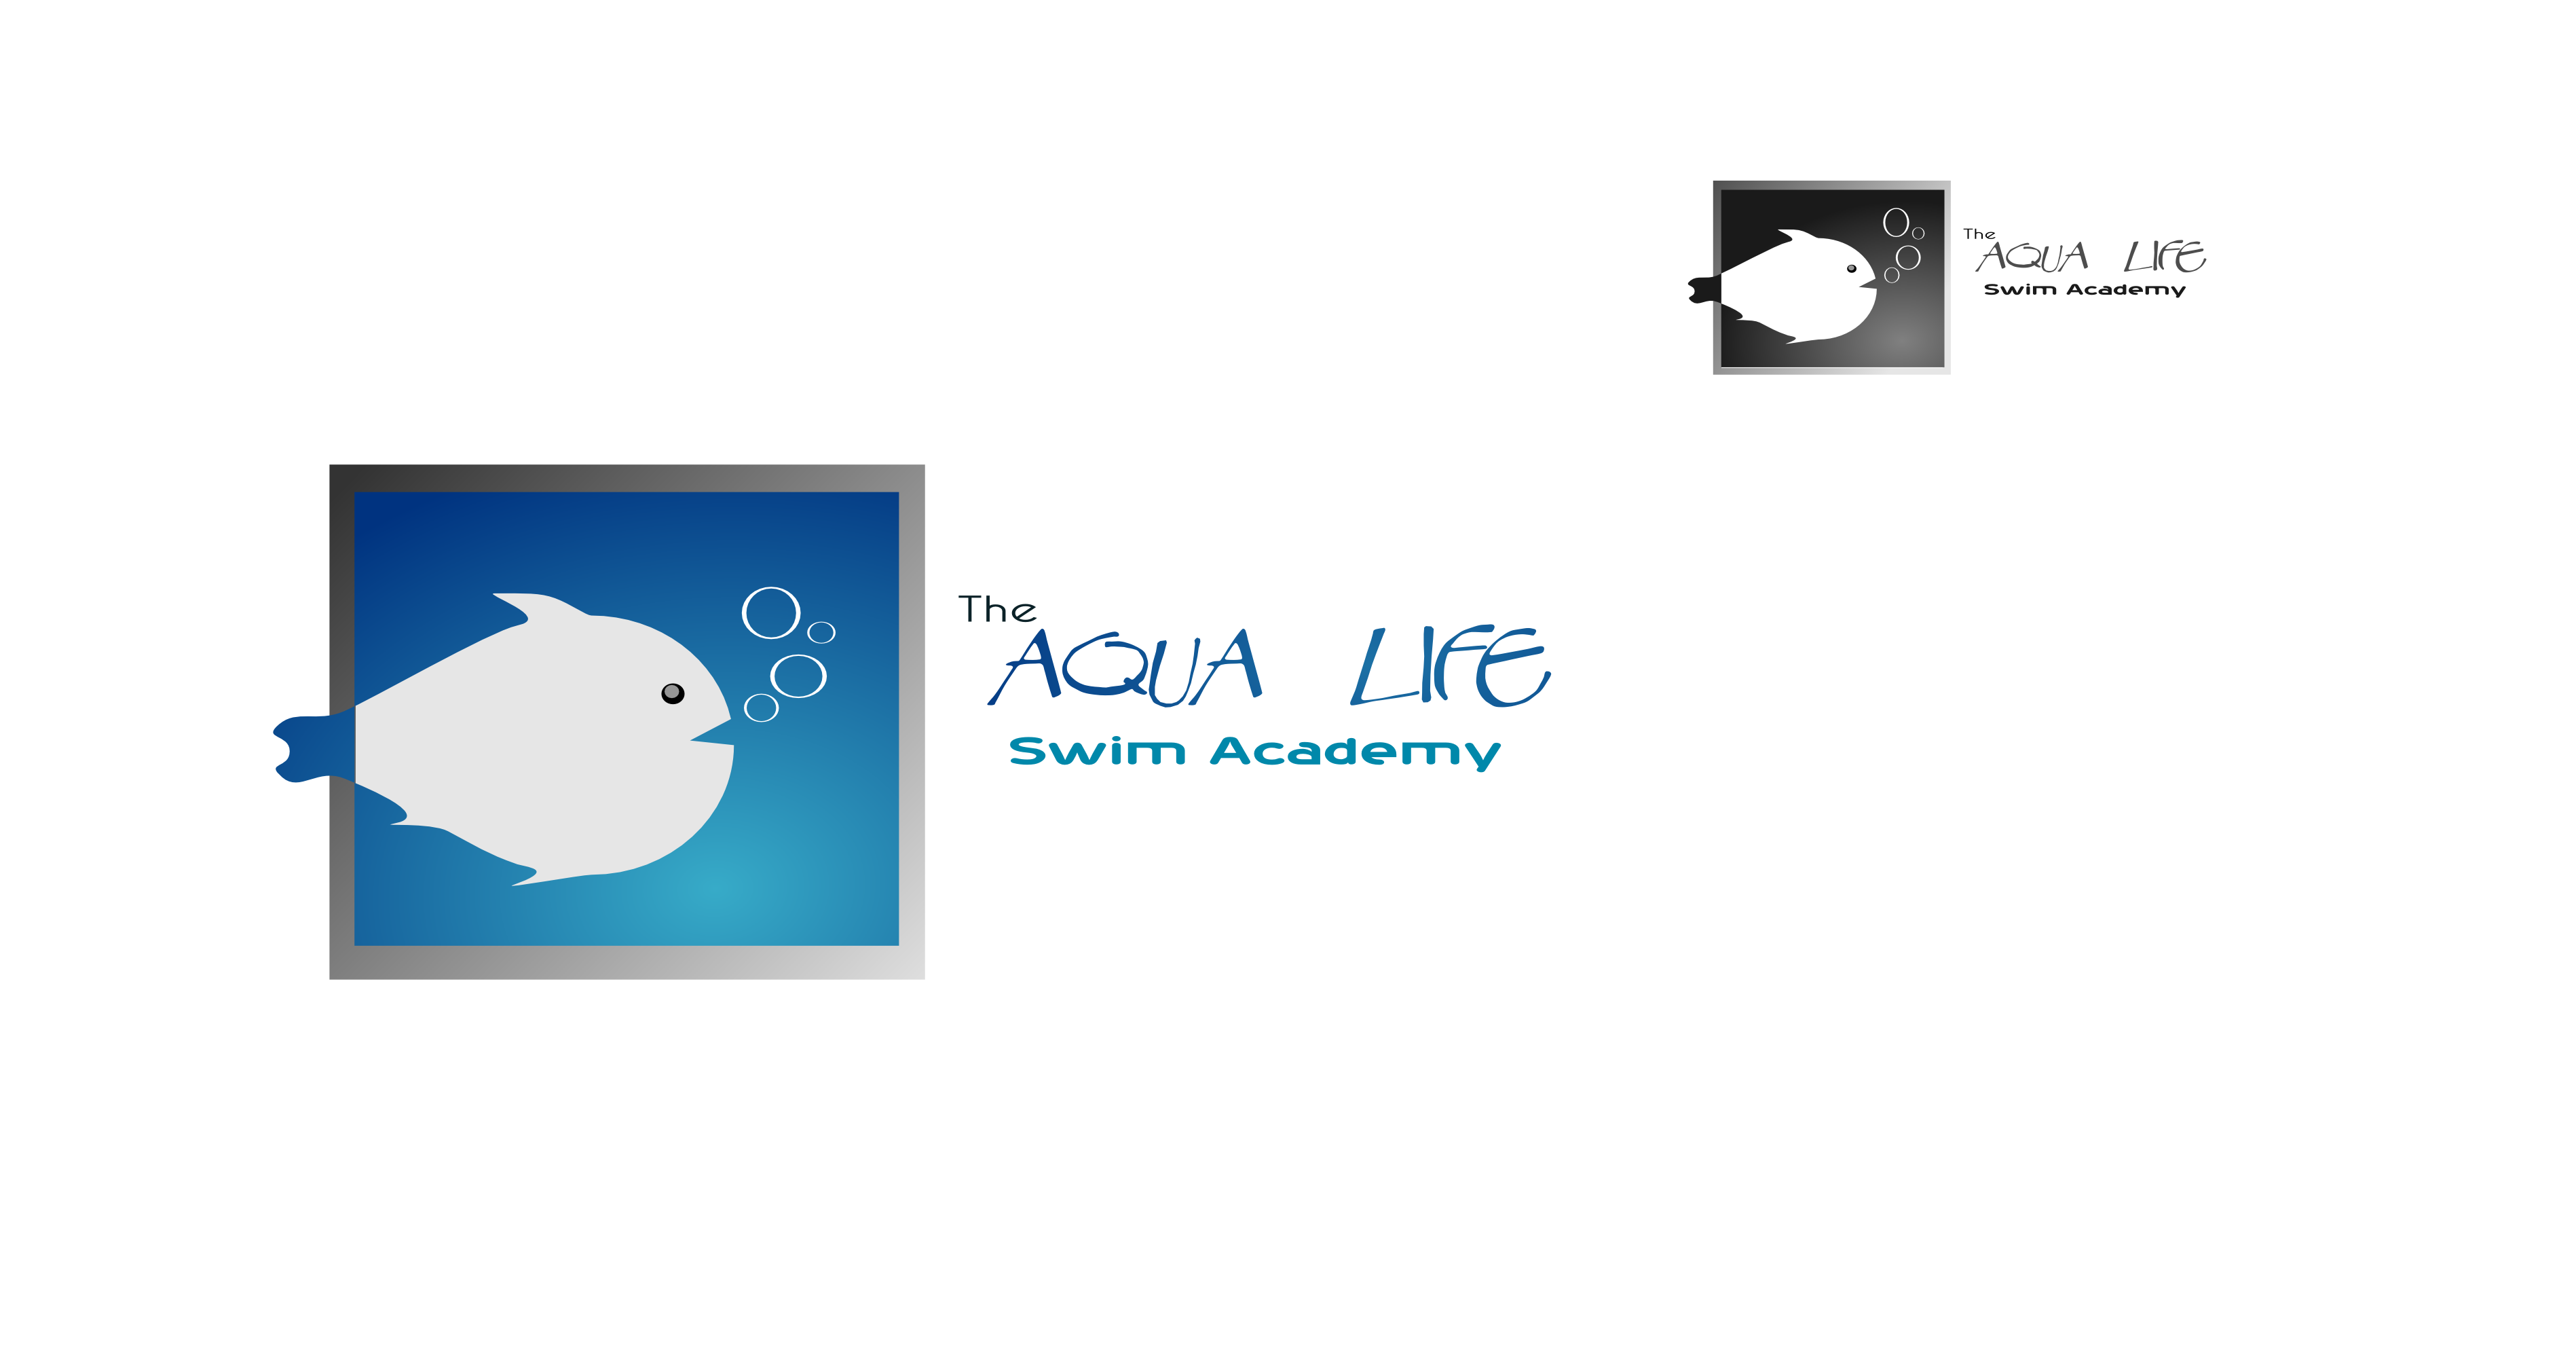 Logo Design by Arindam Khanda - Entry No. 86 in the Logo Design Contest Artistic Logo Design Wanted for The Aqua Life Swim Academy.